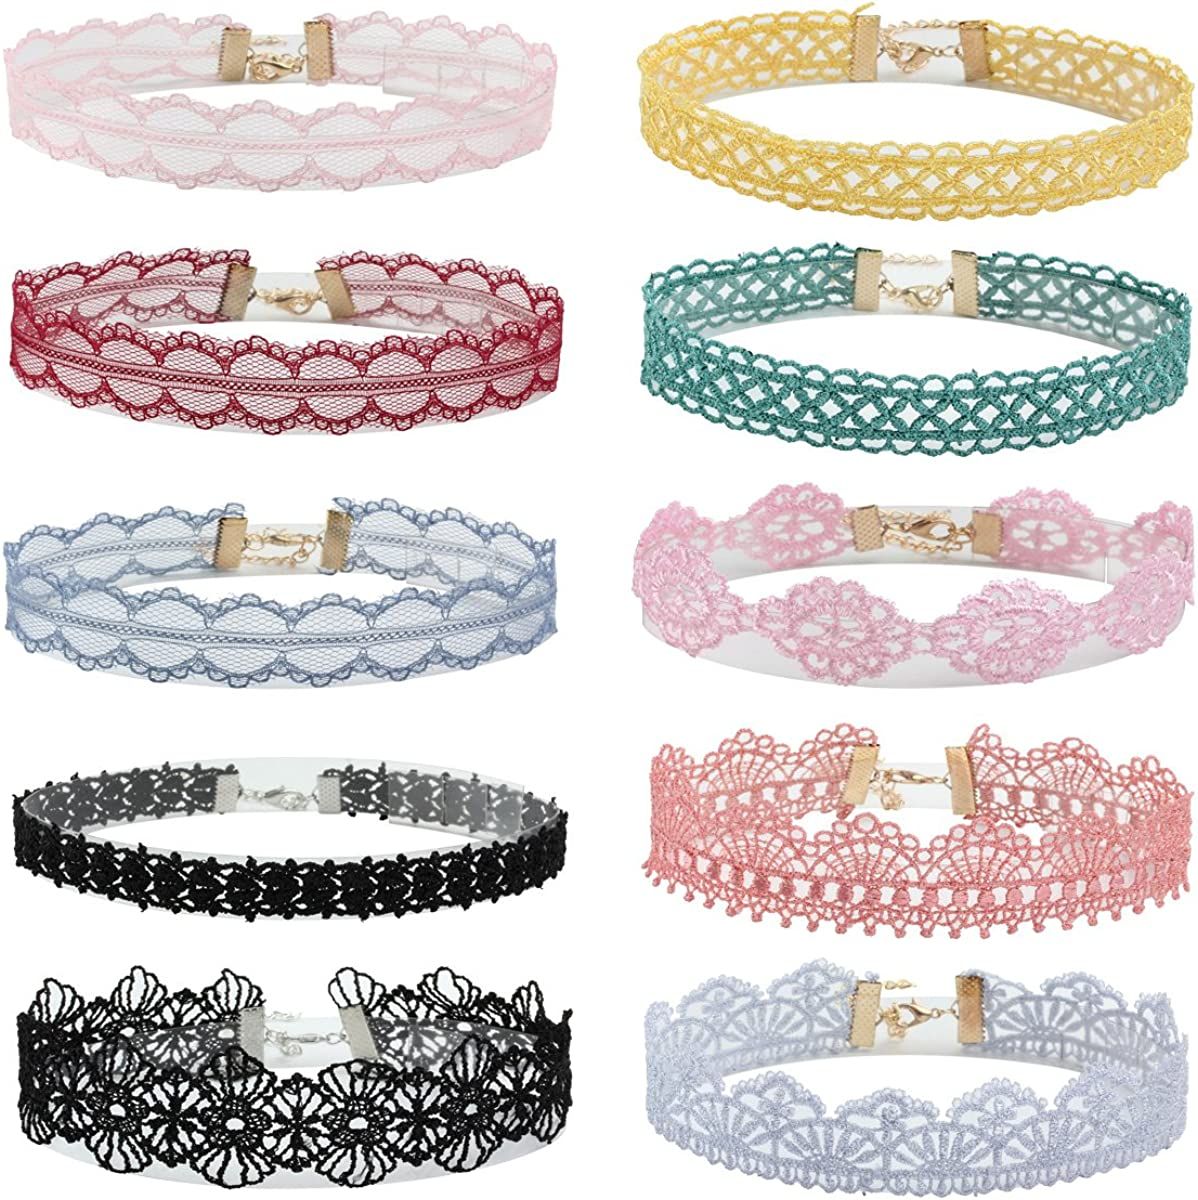 Milakoo 10 Pcs Lace Floral Choker for Women Gothic Tattoo Choker Collar Lace Necklace Adjustable